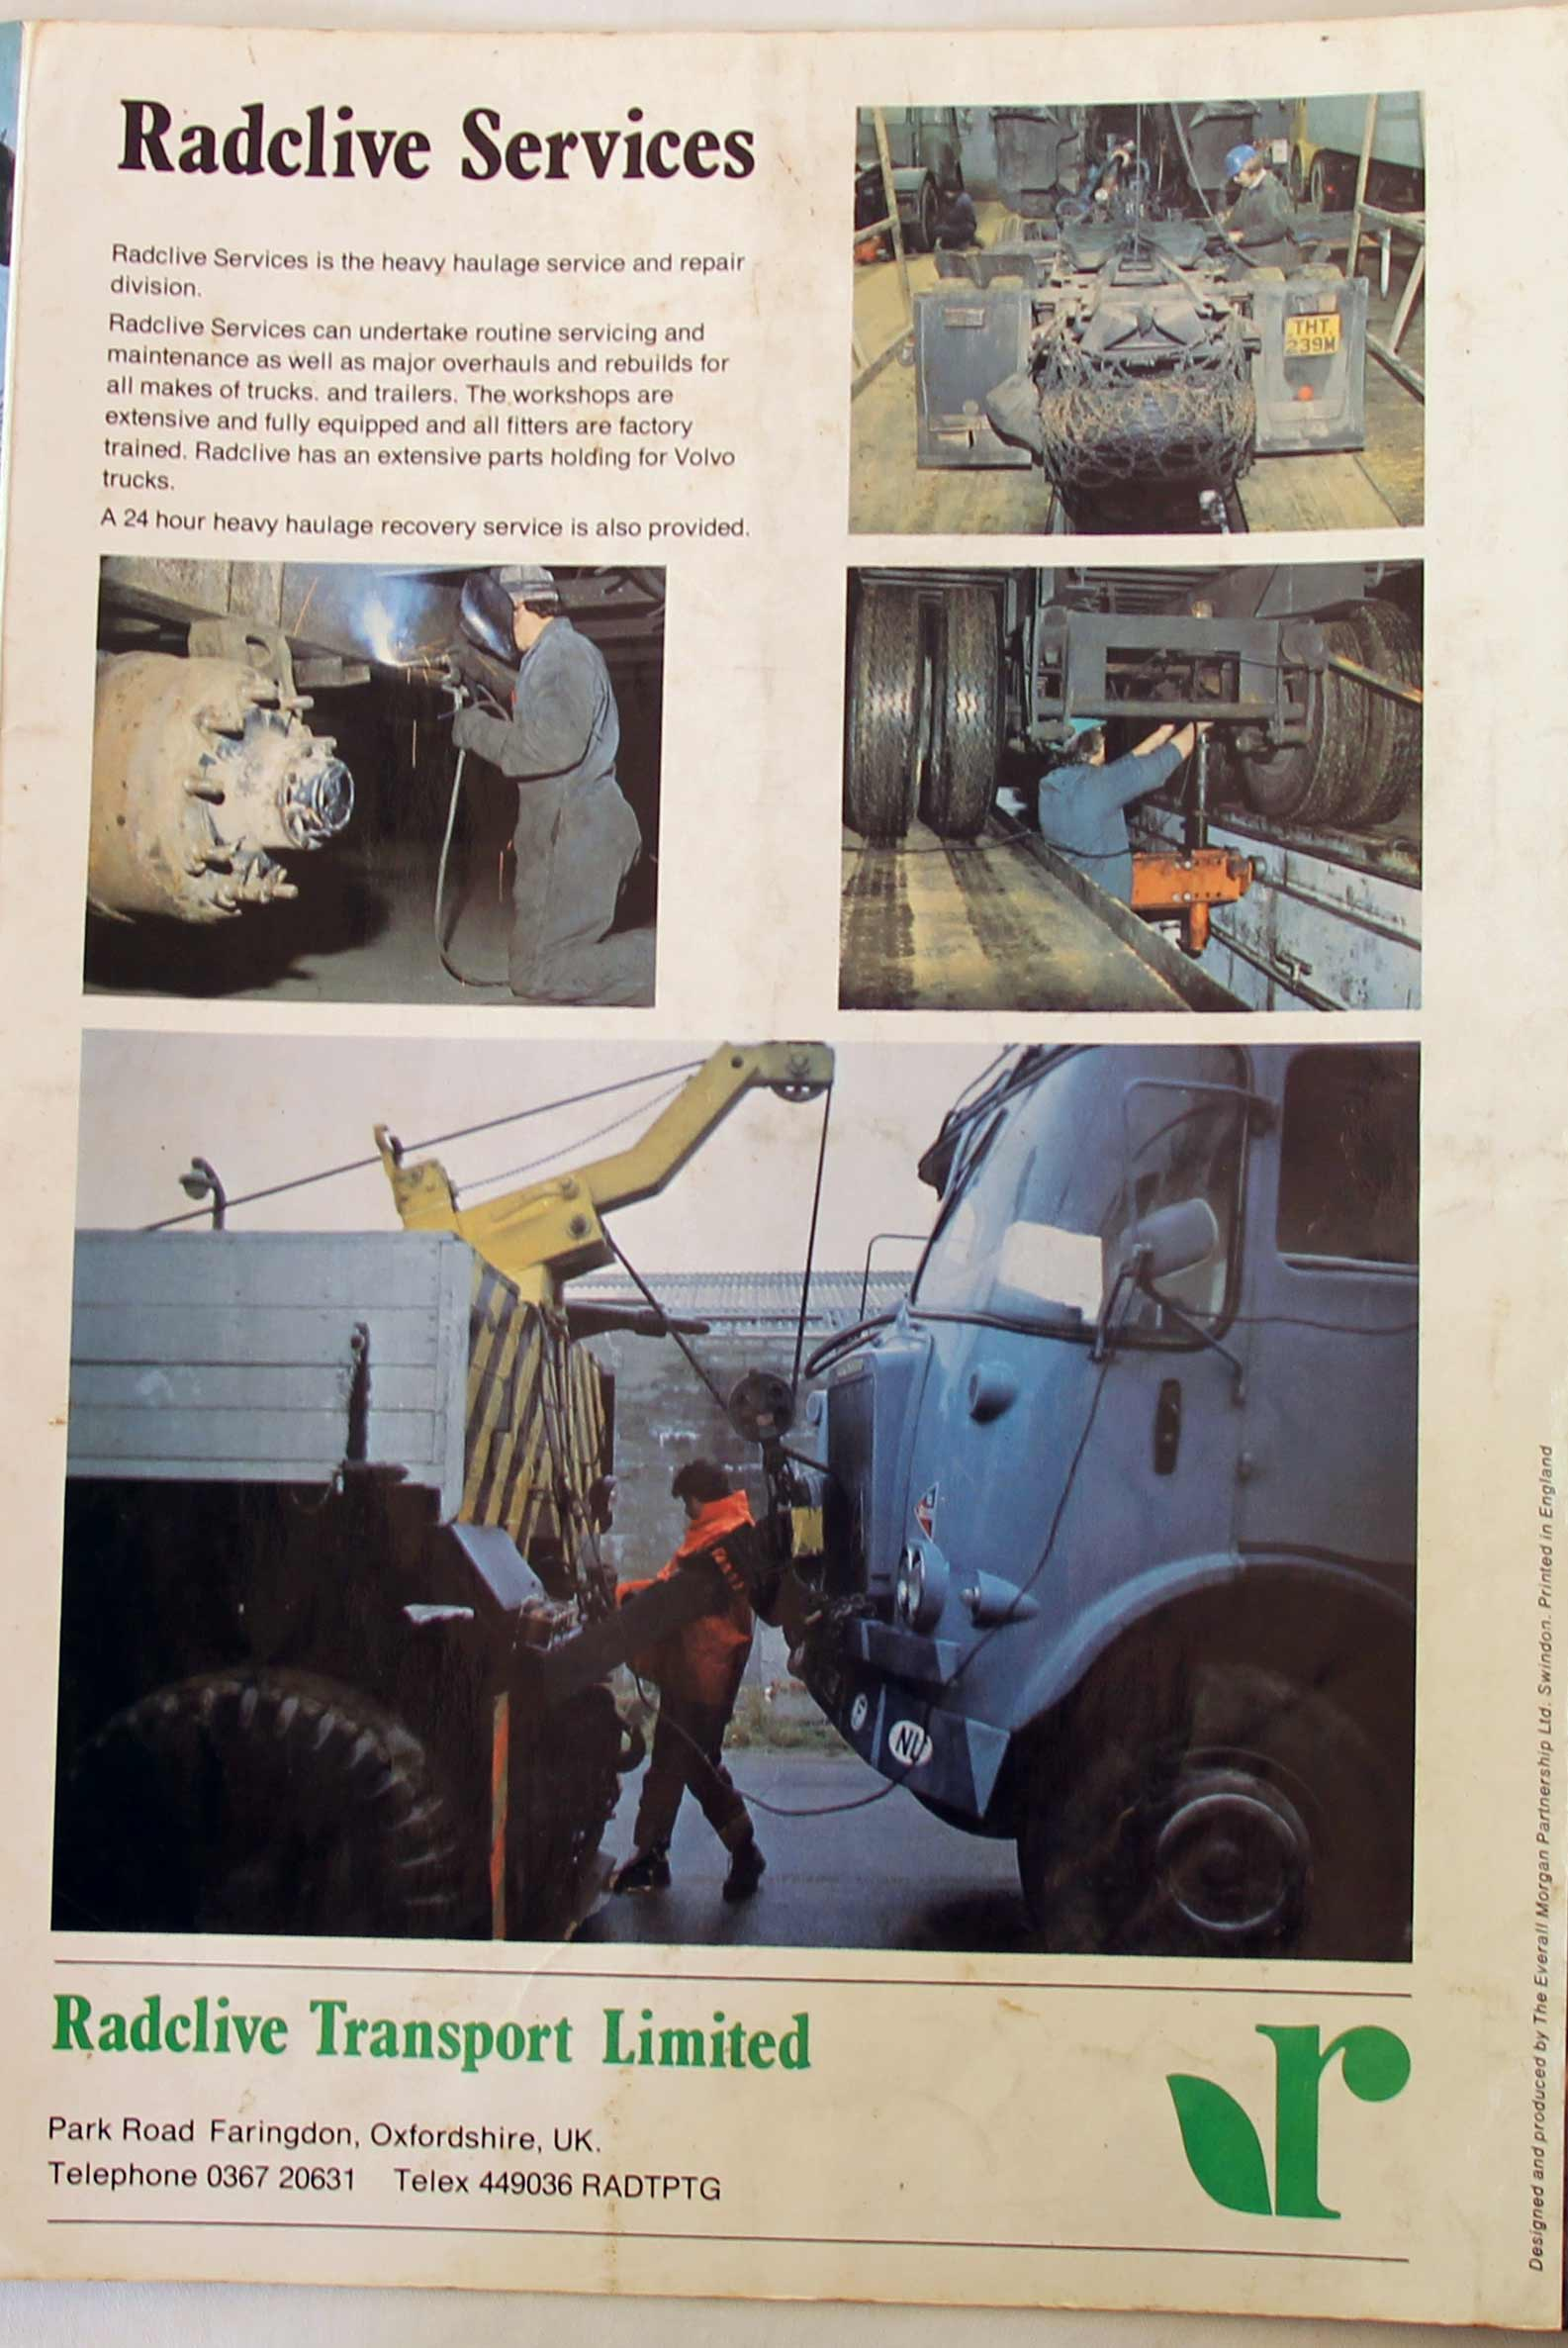 1970s trucking in England, Europe and the Middle East - Malcolm Coates